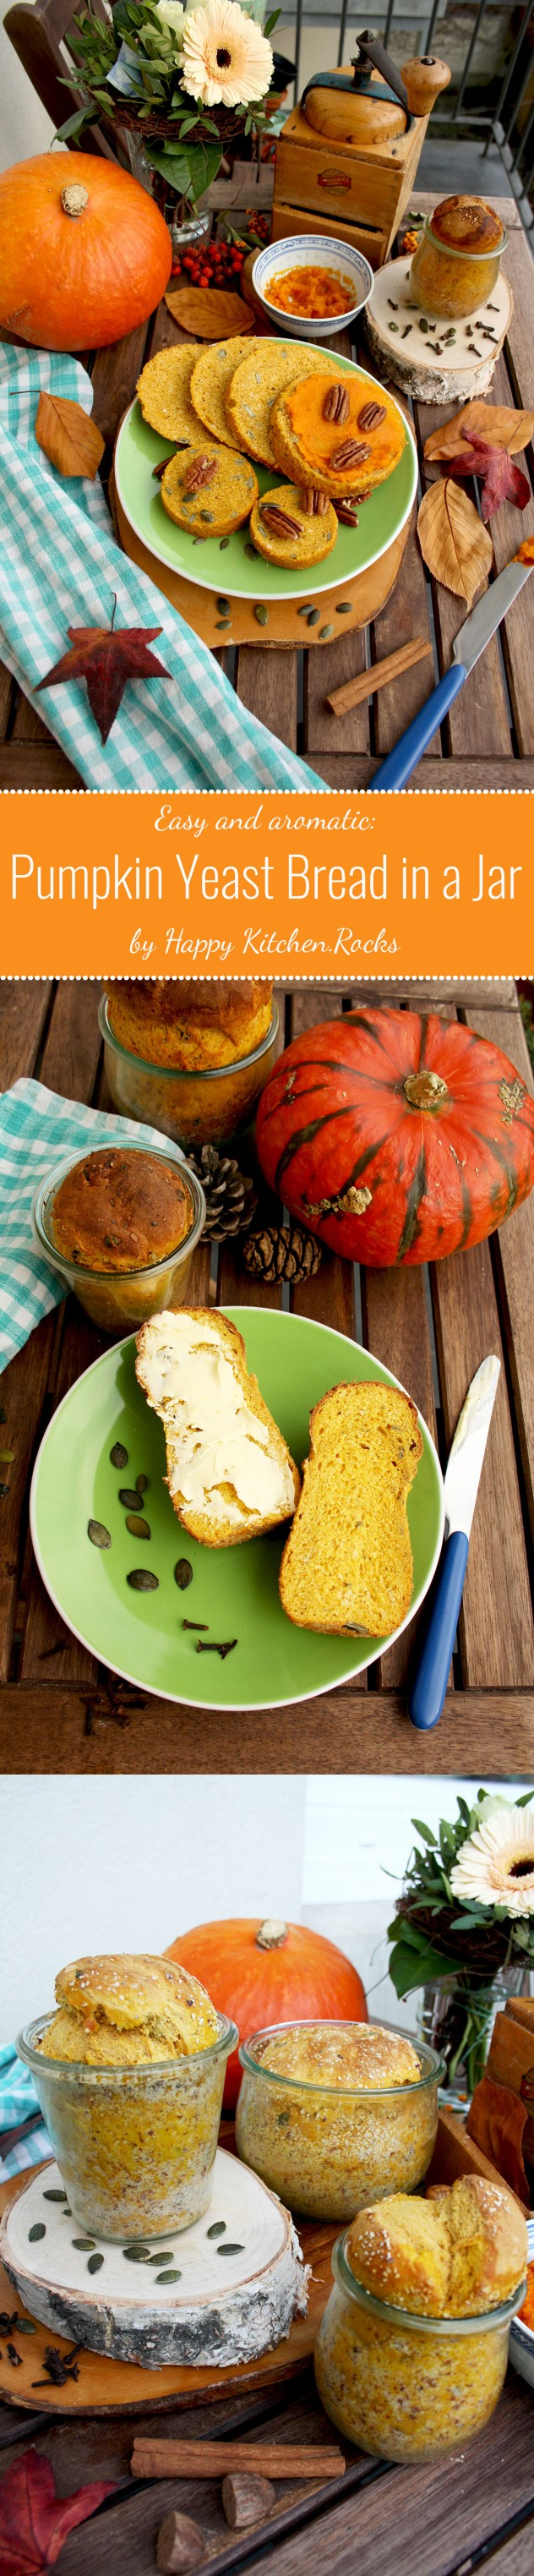 Pumpkin Yeast Bread in a Jar: easy and aromatic pumpkin bread that can be preserved for later. Great homemade gift idea for holidays for your loved ones! width=